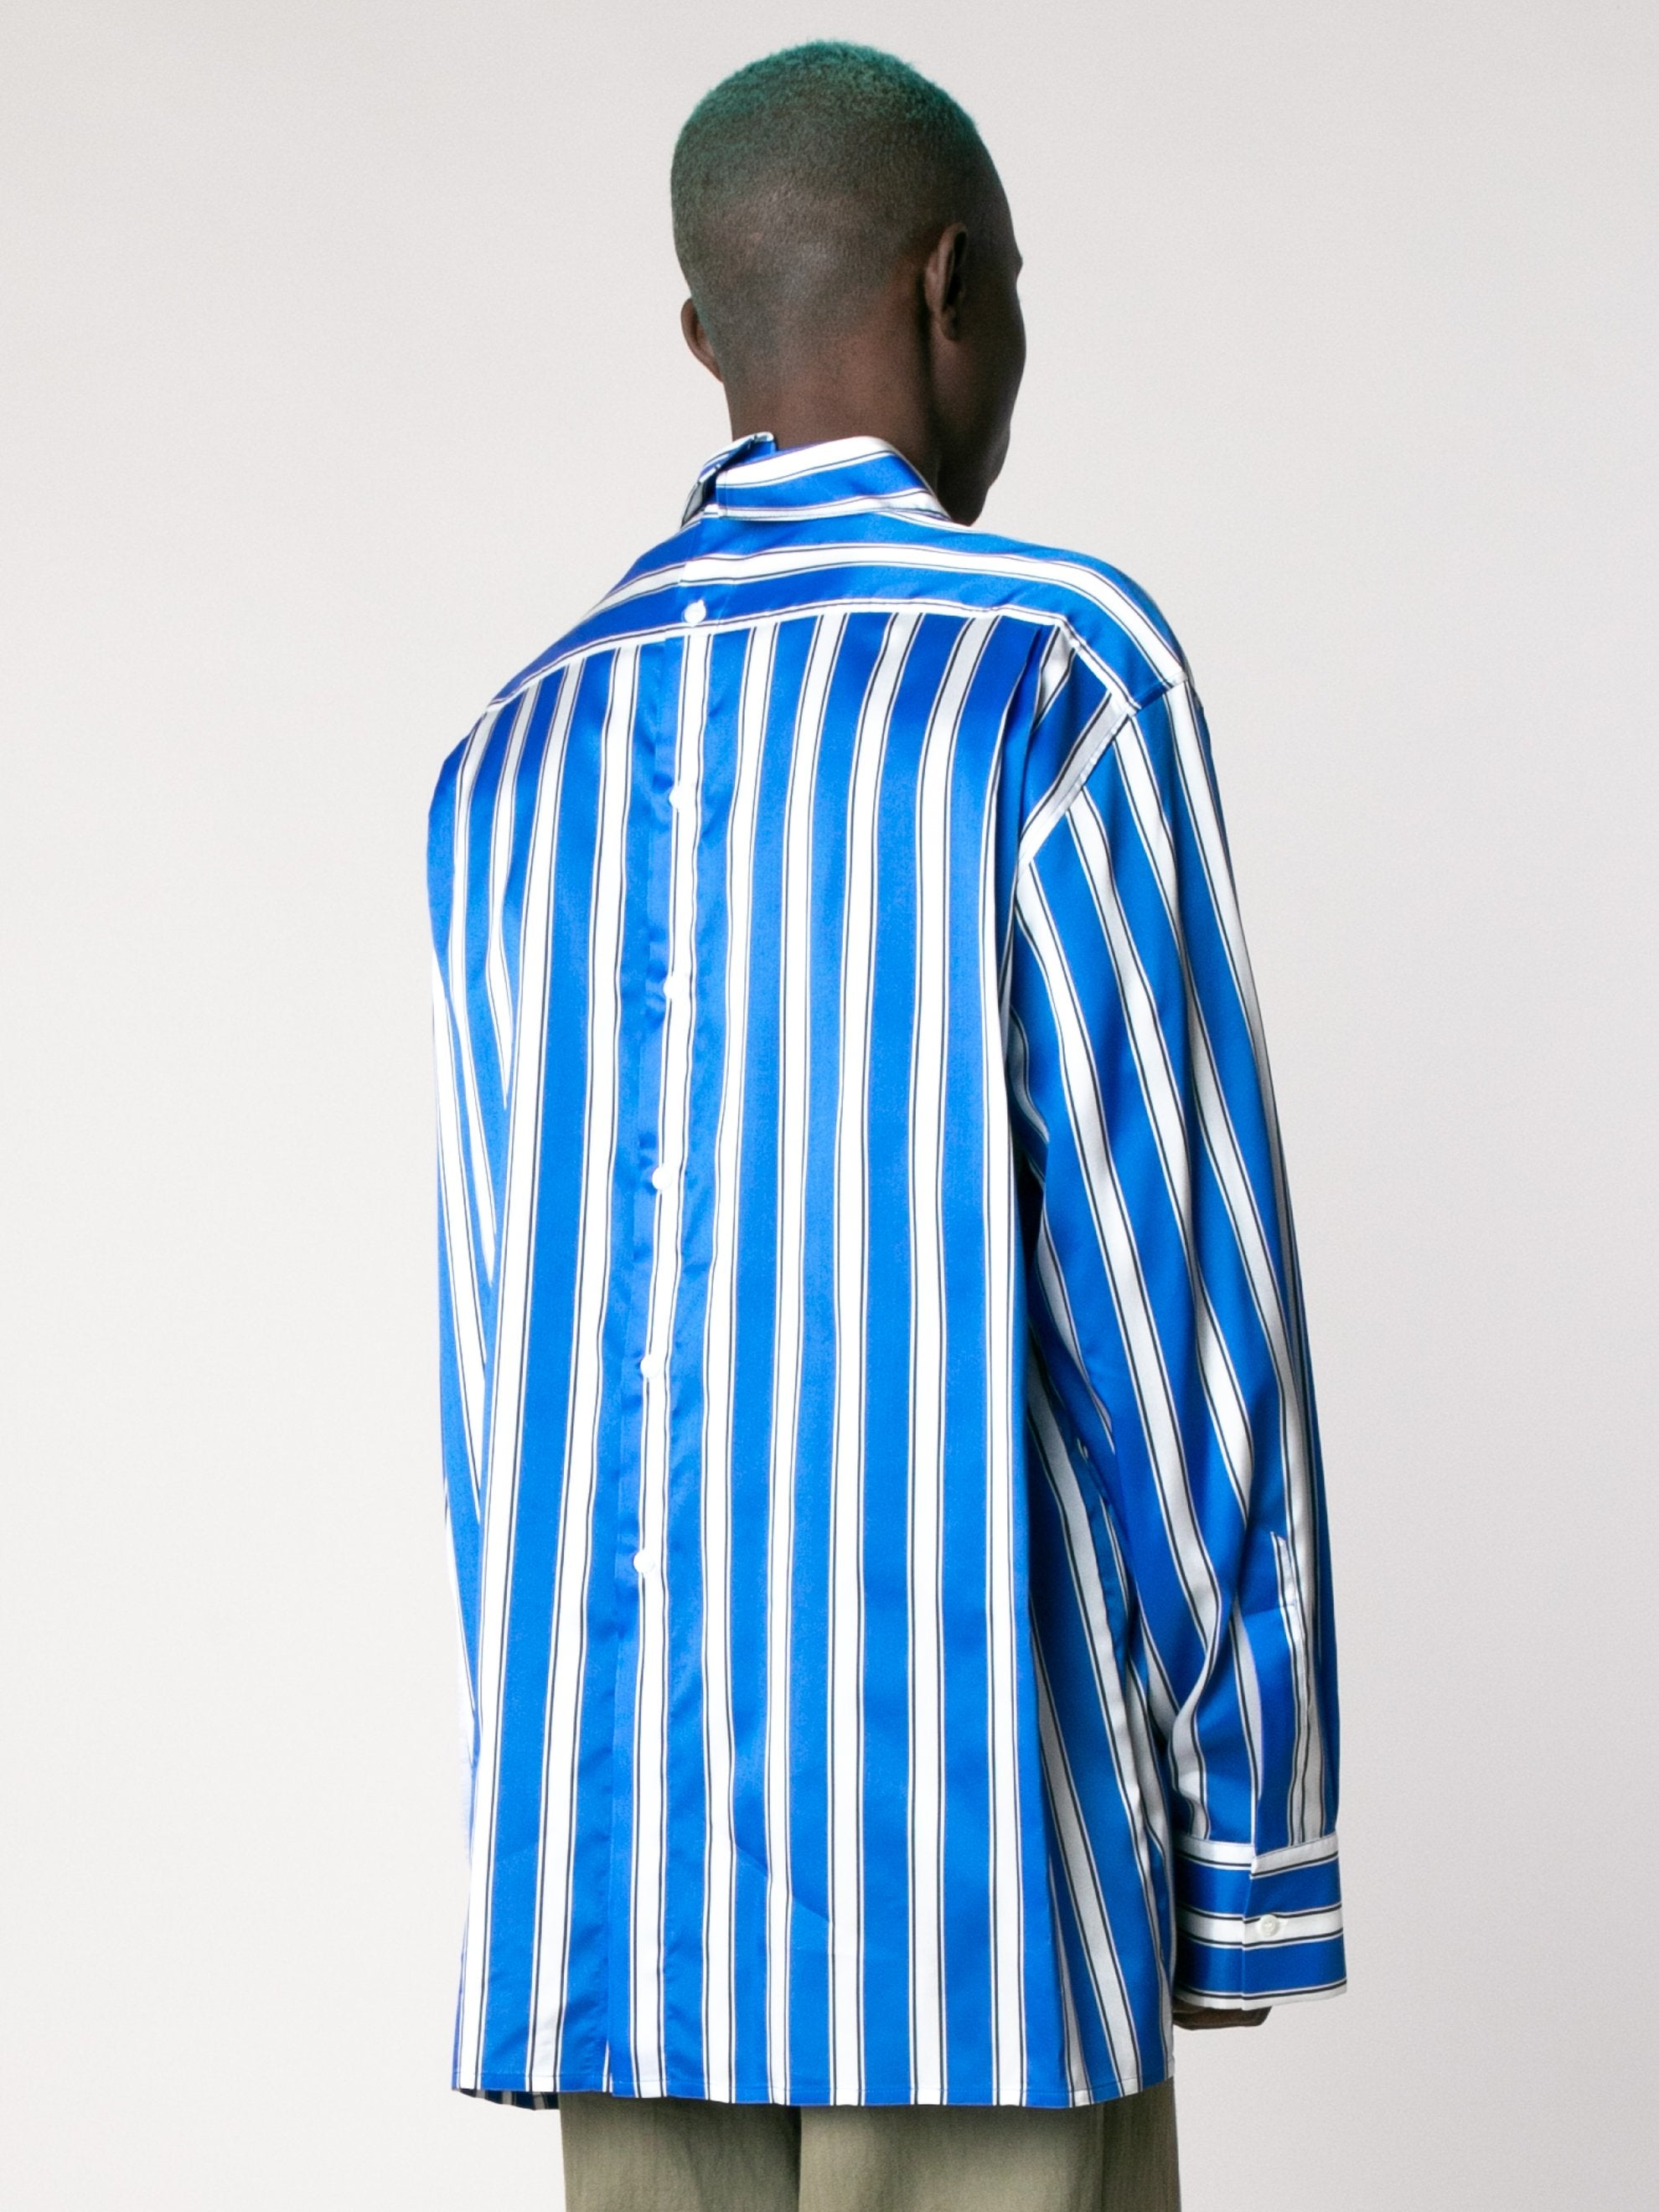 White Cobalt Side Label Lining Shirt 5